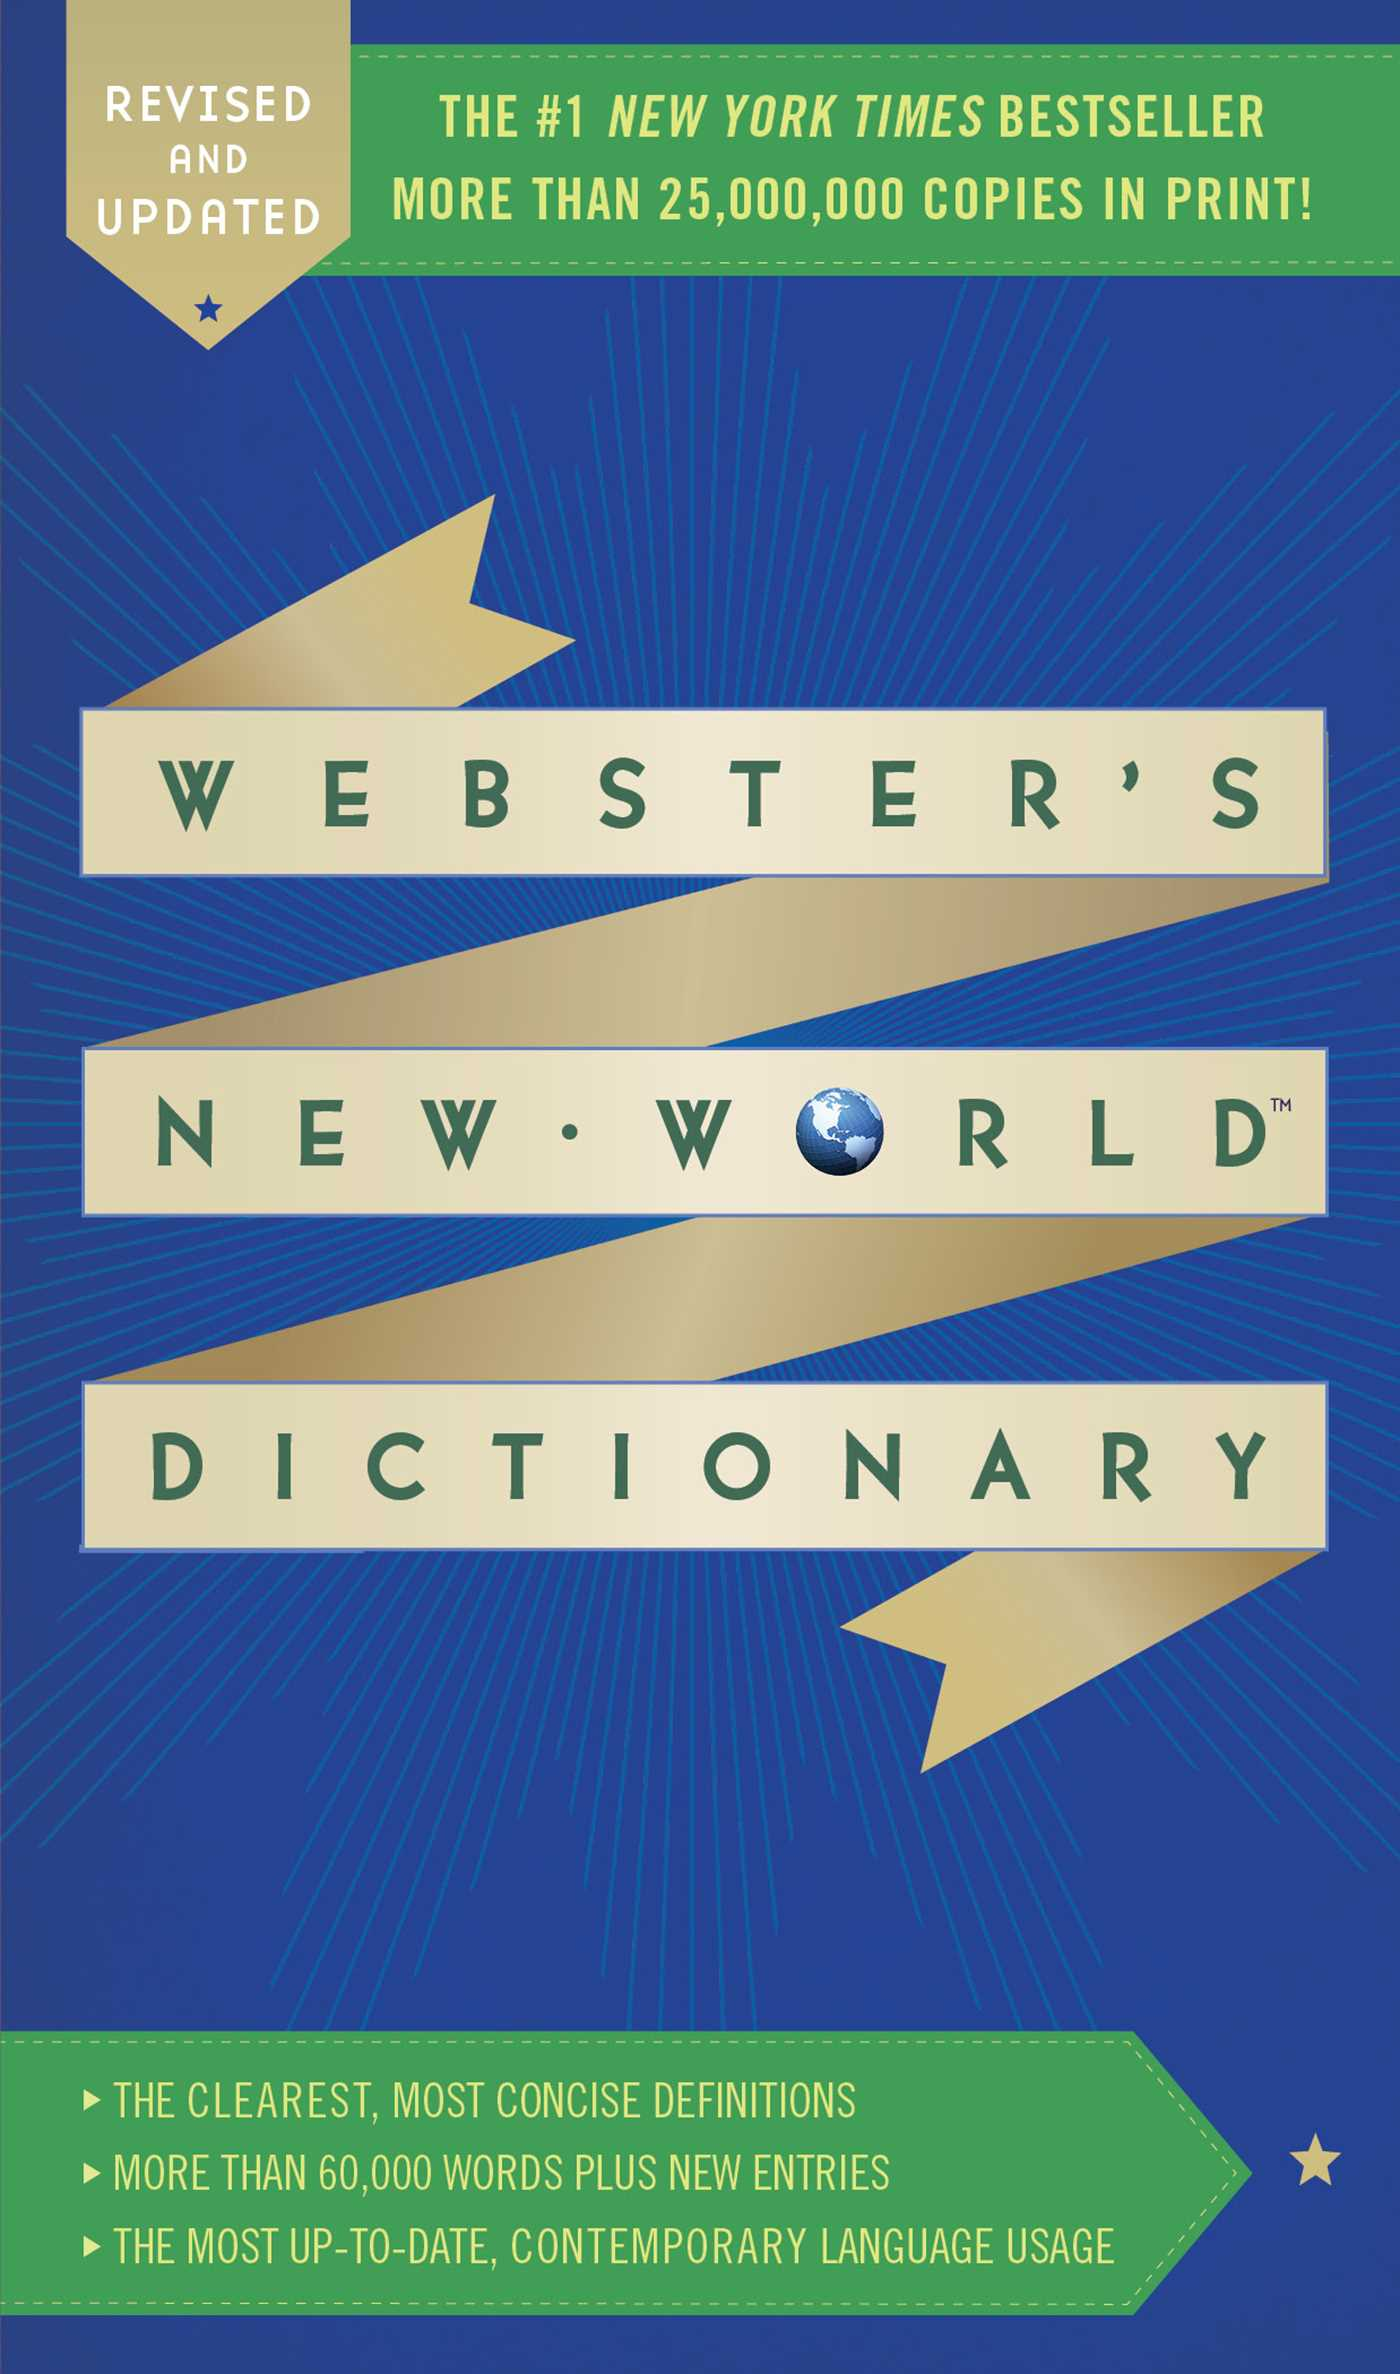 a description of the world in websters new world dictionary Views expressed in the examples do not represent the opinion of merriam-webster or its definition of world for english merriam-webster's unabridged dictionary.